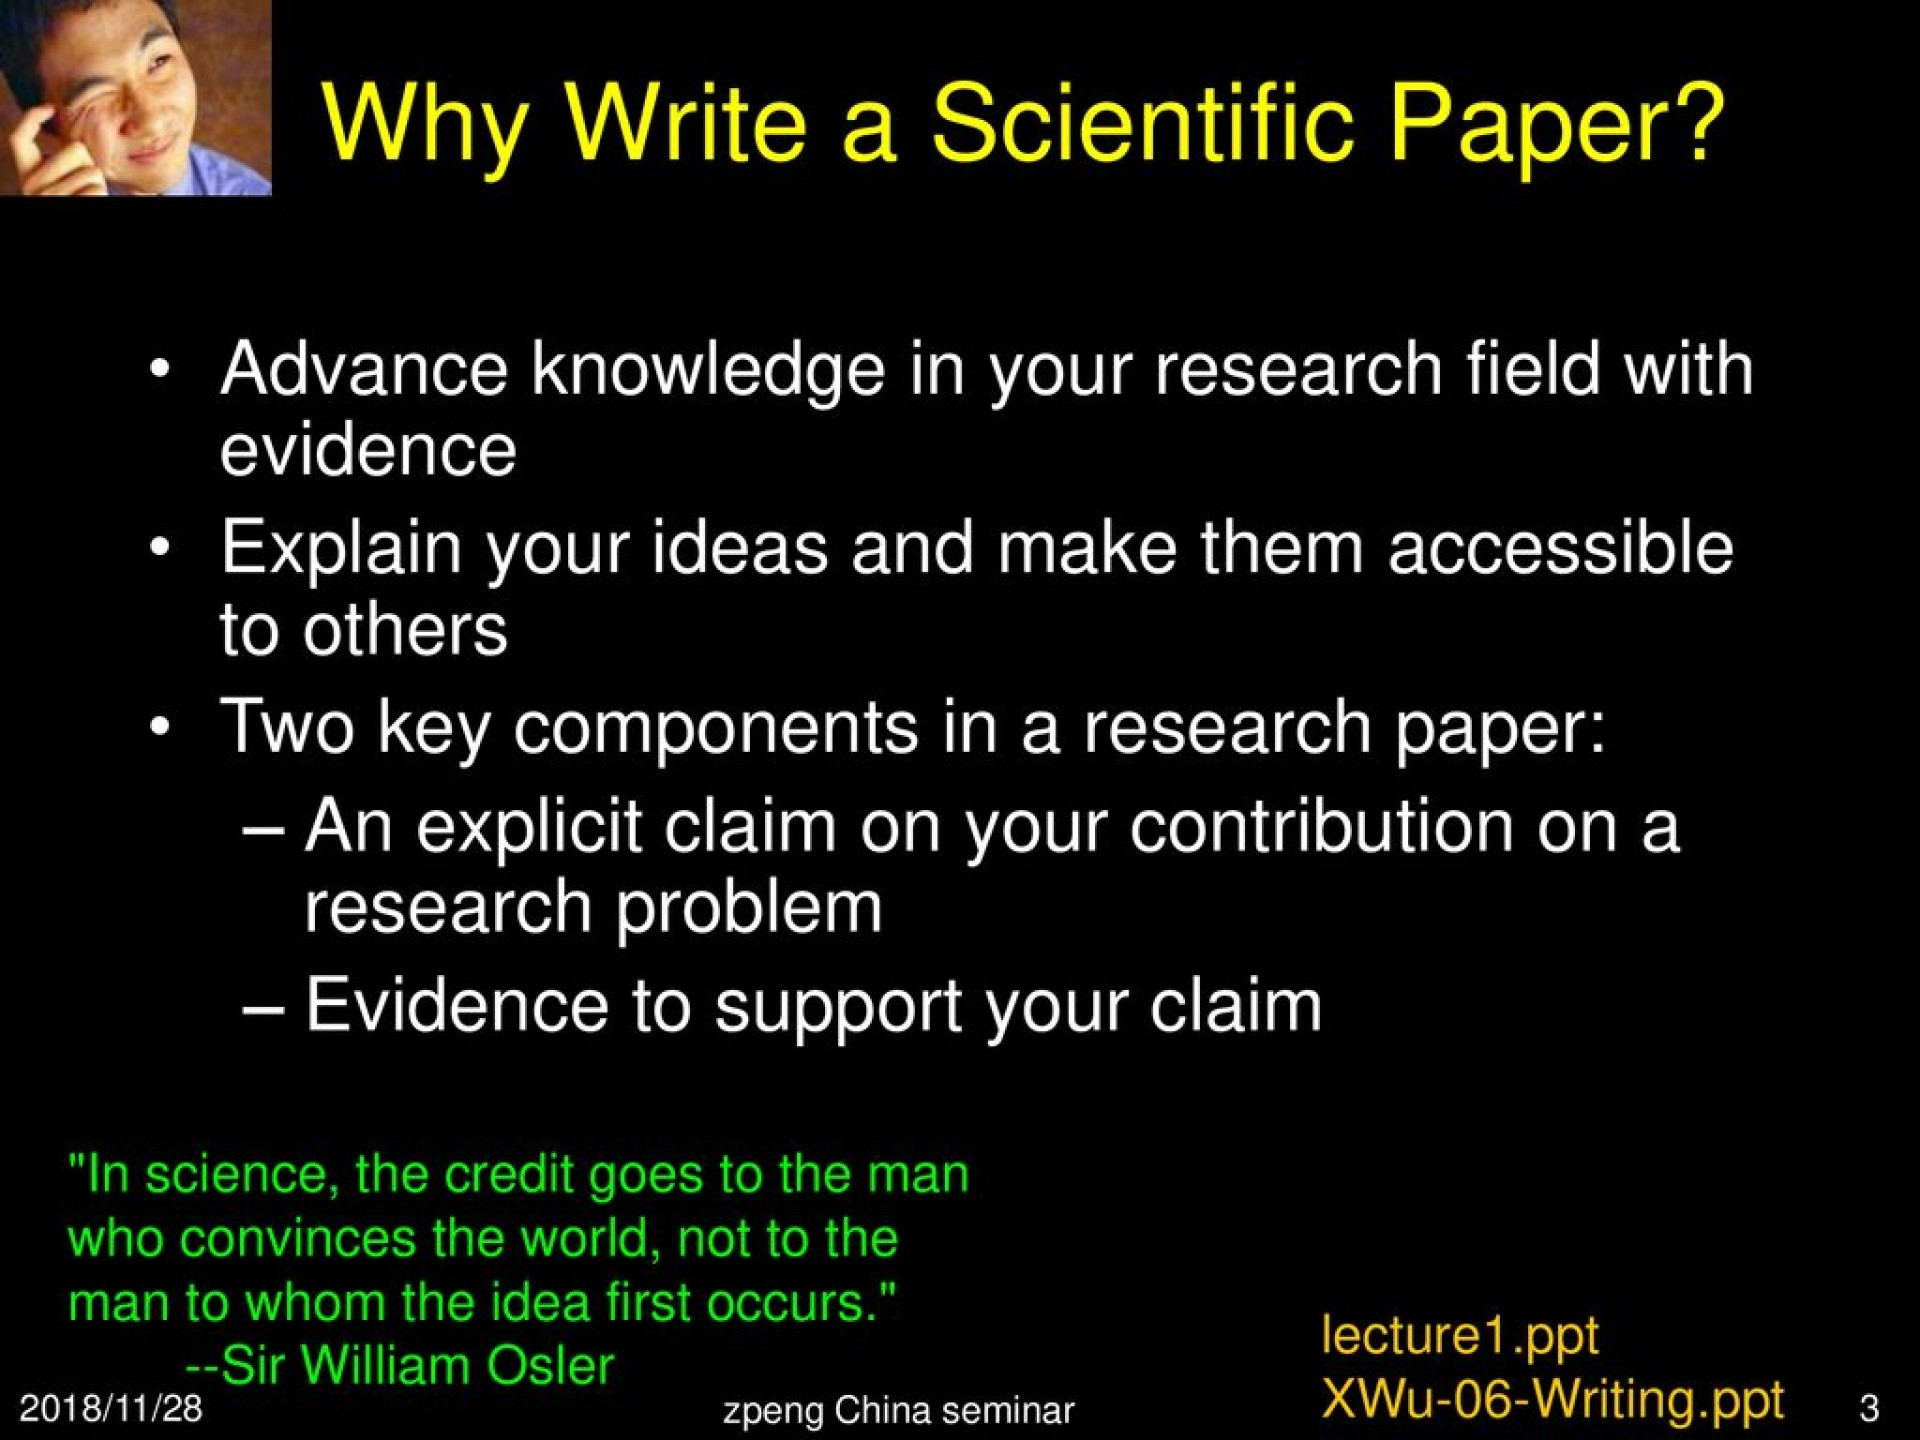 006 How To Read Research Paper Ppt Striking A Scientific 1920